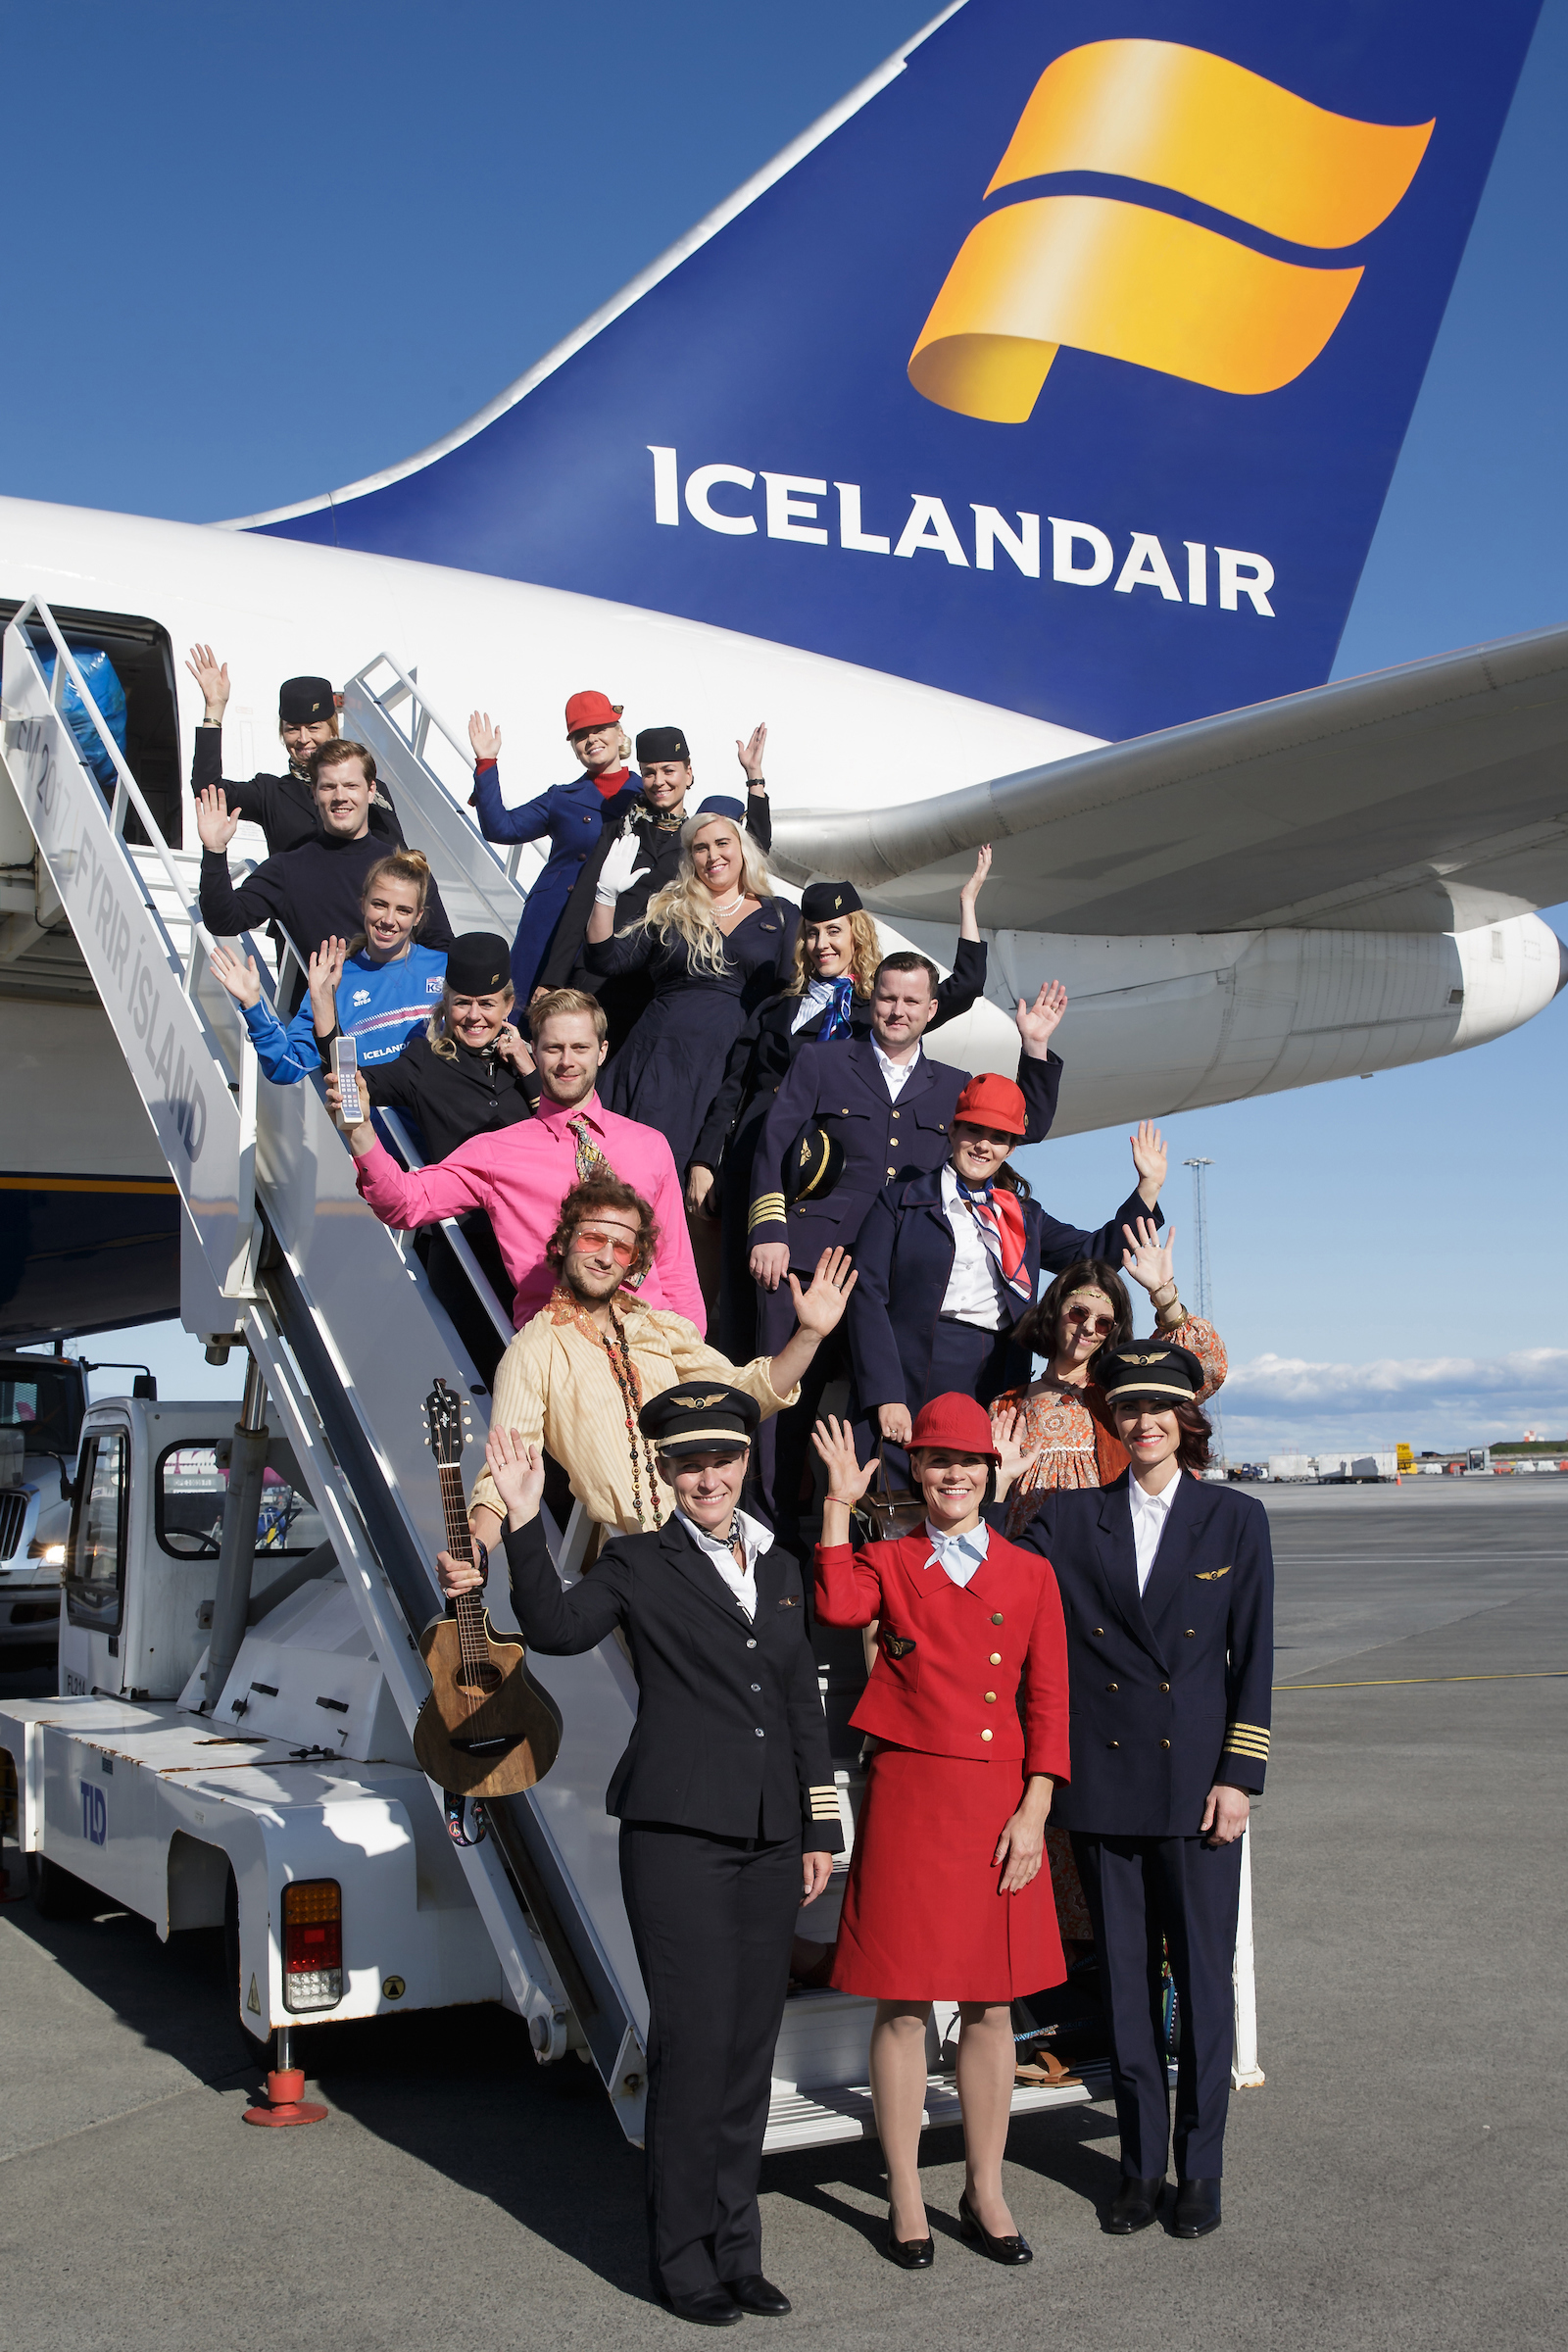 a large group of people standing on the stairs of an Icelandair aircraft, all dressed in a mix of fancy dress and Icelandair uniforms